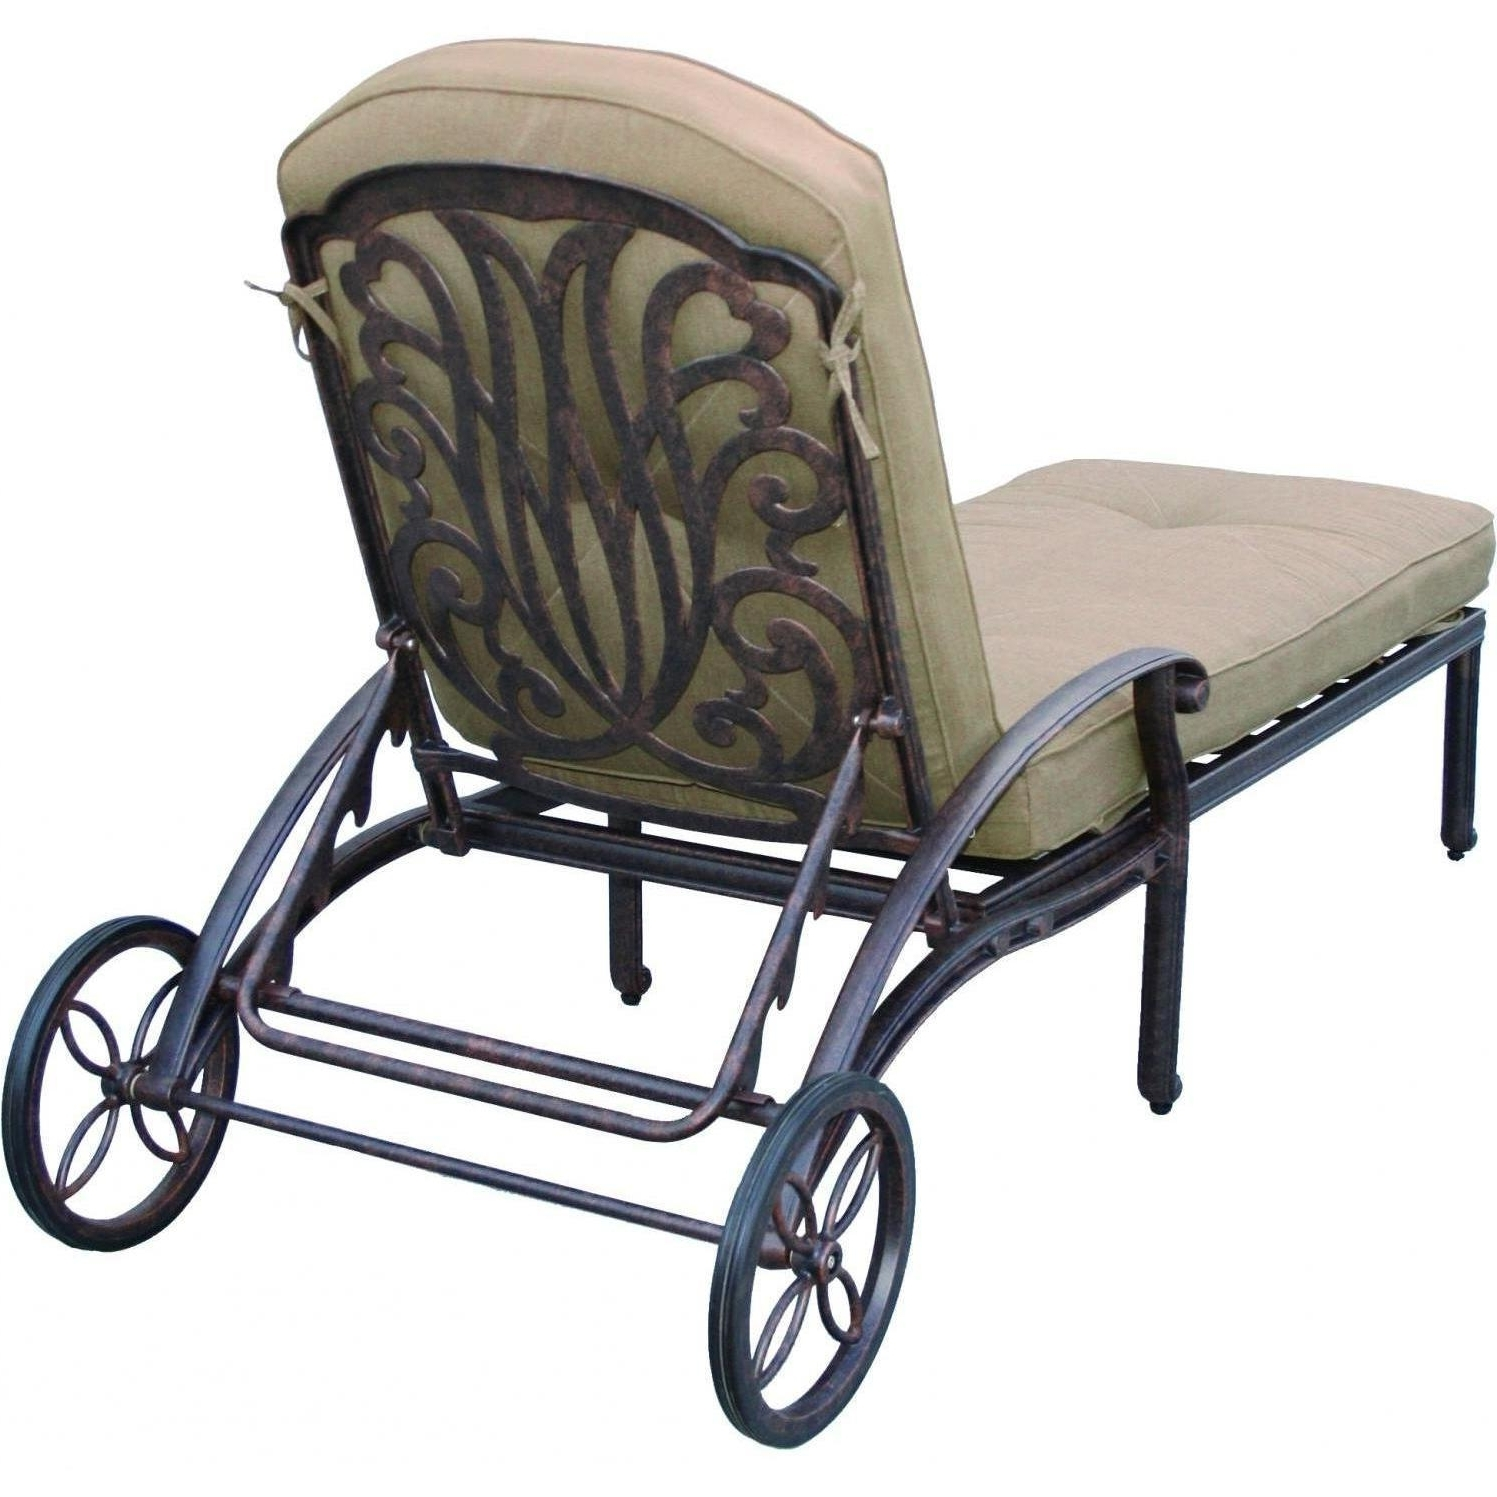 Darlee Elisabeth Cast Aluminum Patio Chaise Lounge : Ultimate Patio With Well Known Aluminum Chaise Lounge Chairs (View 6 of 15)